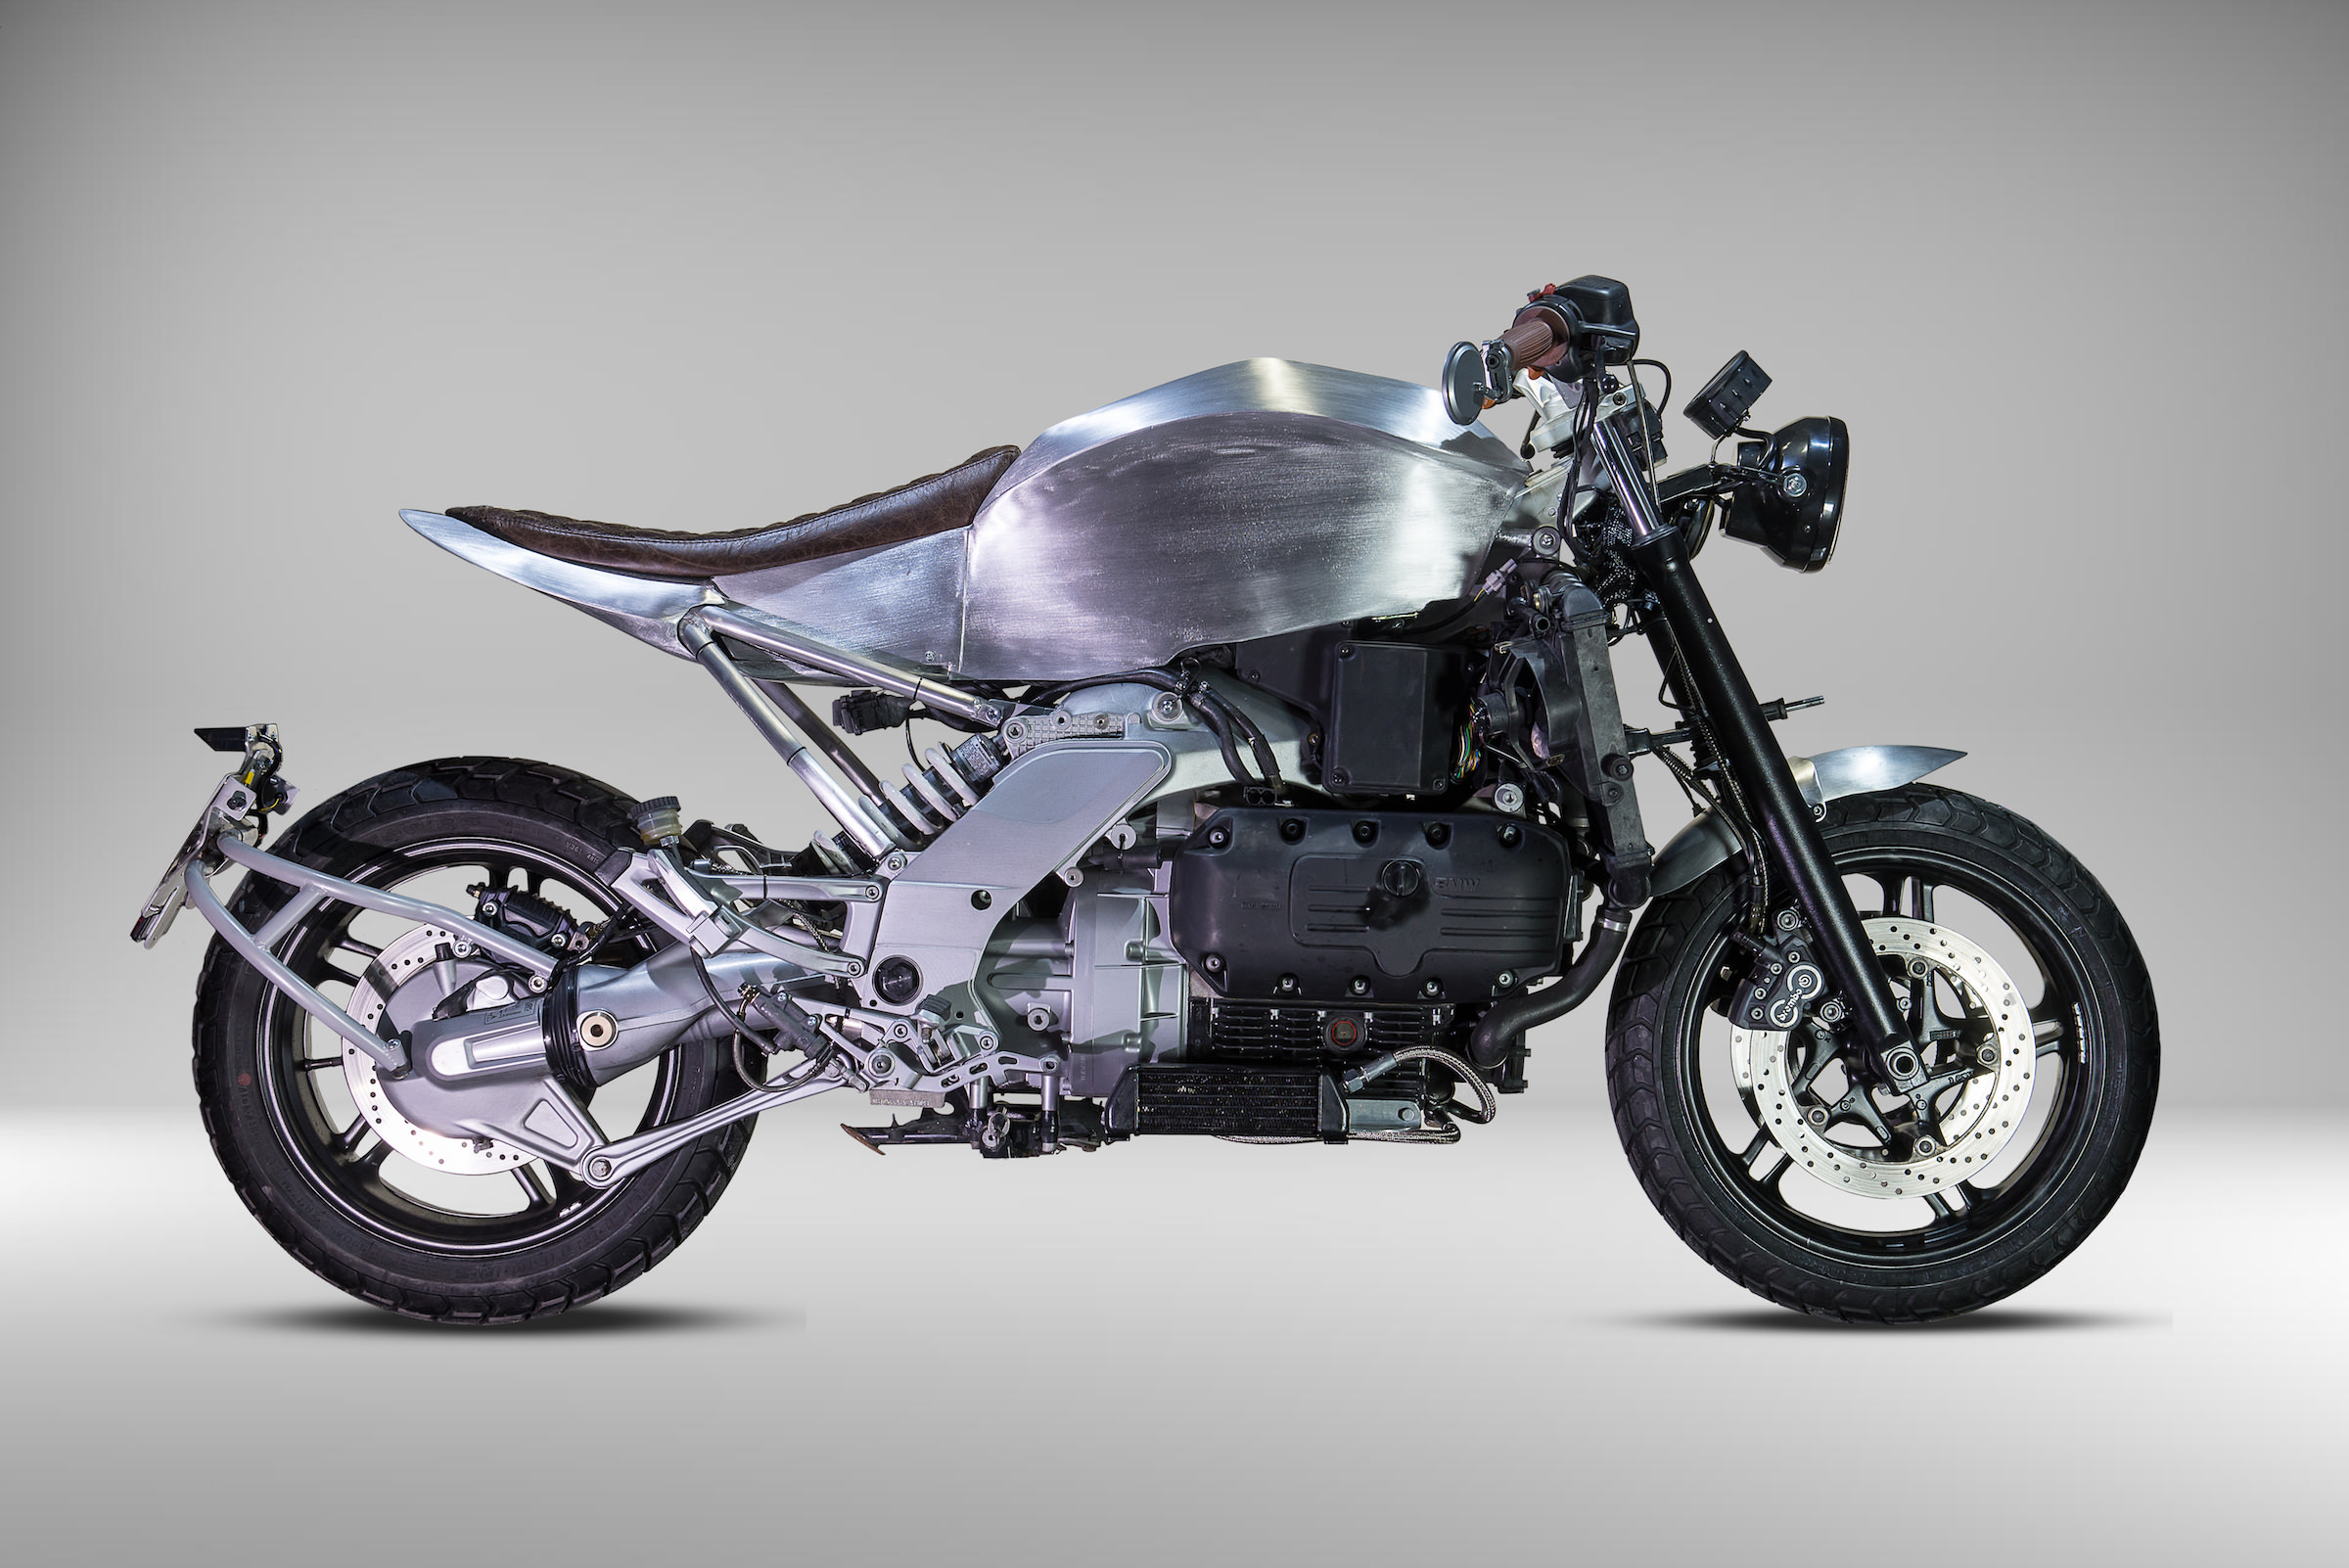 The Metalbike Garage Custom Bmw K1200rs